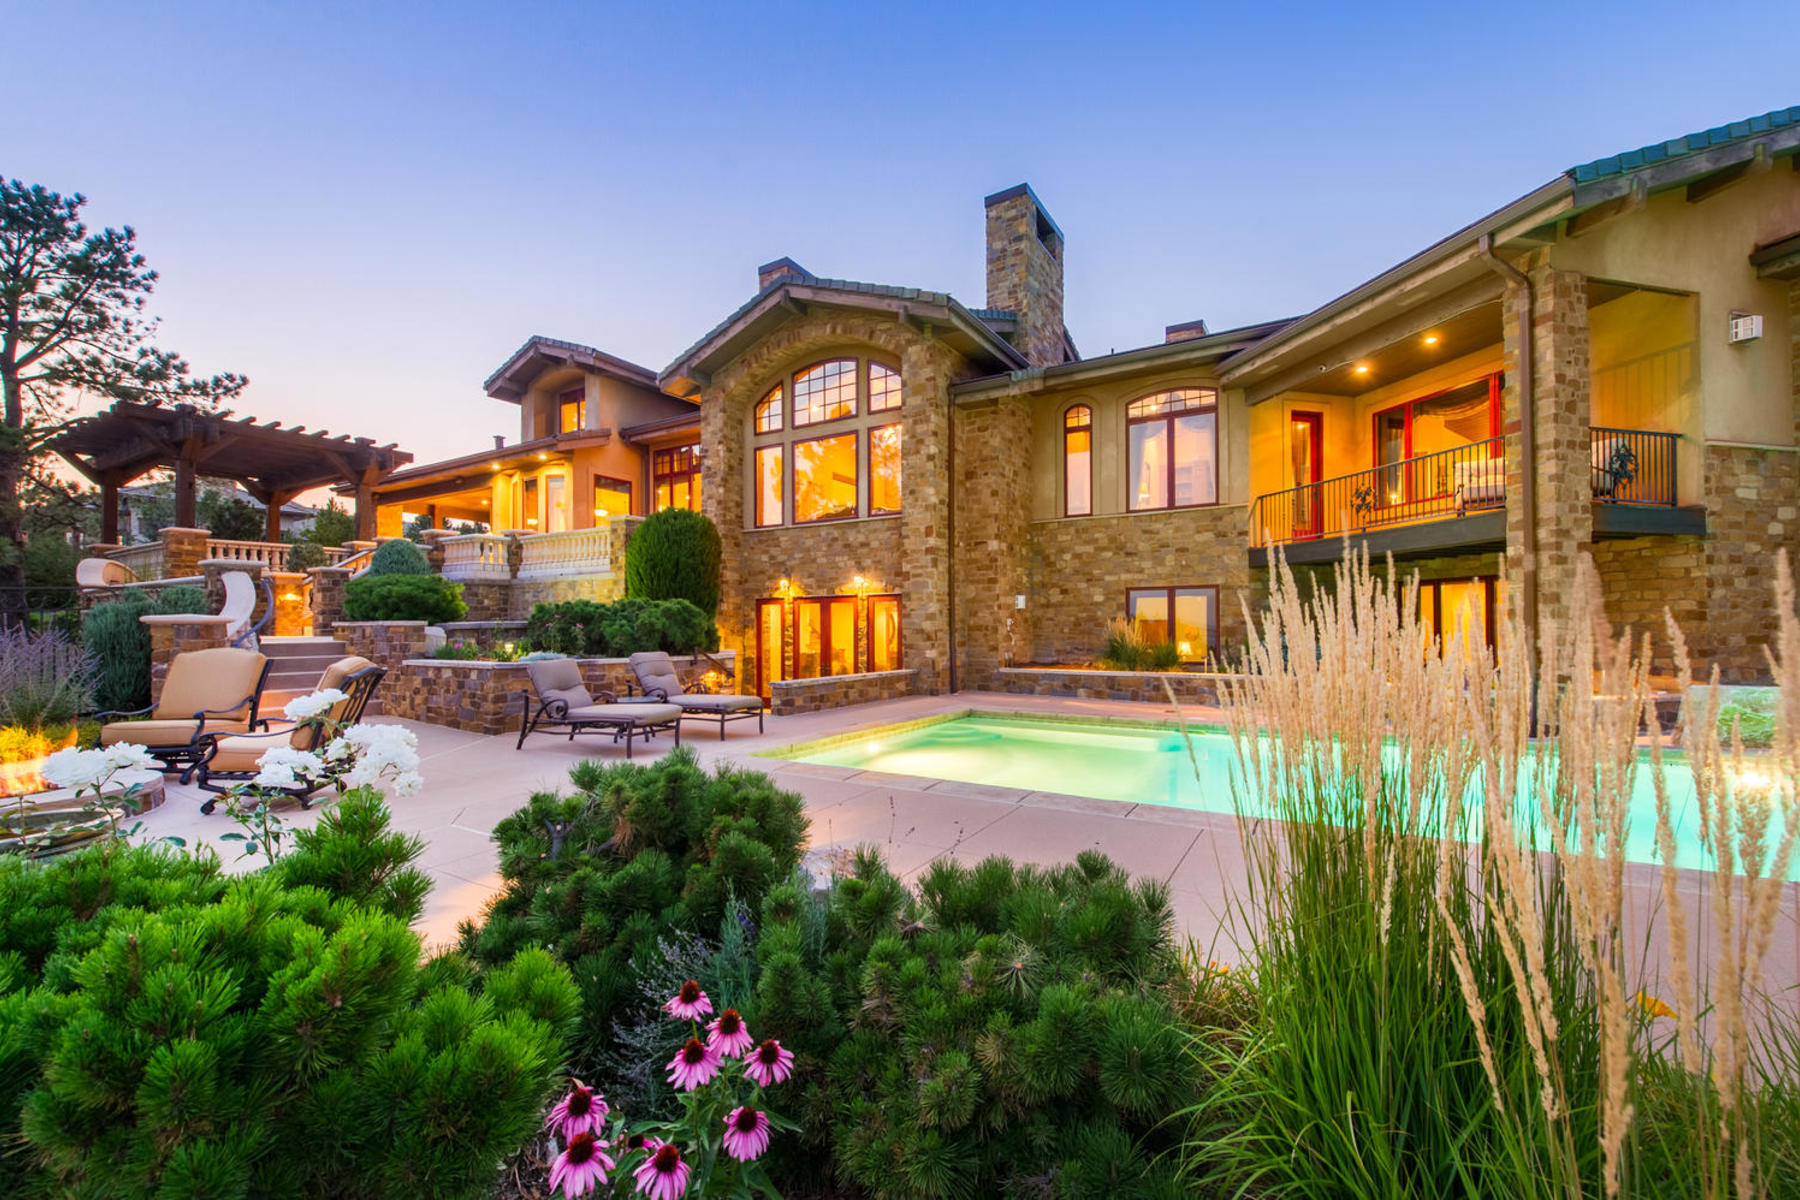 Single Family Homes for Sale at Castle Rock, Colorado 80108 United States